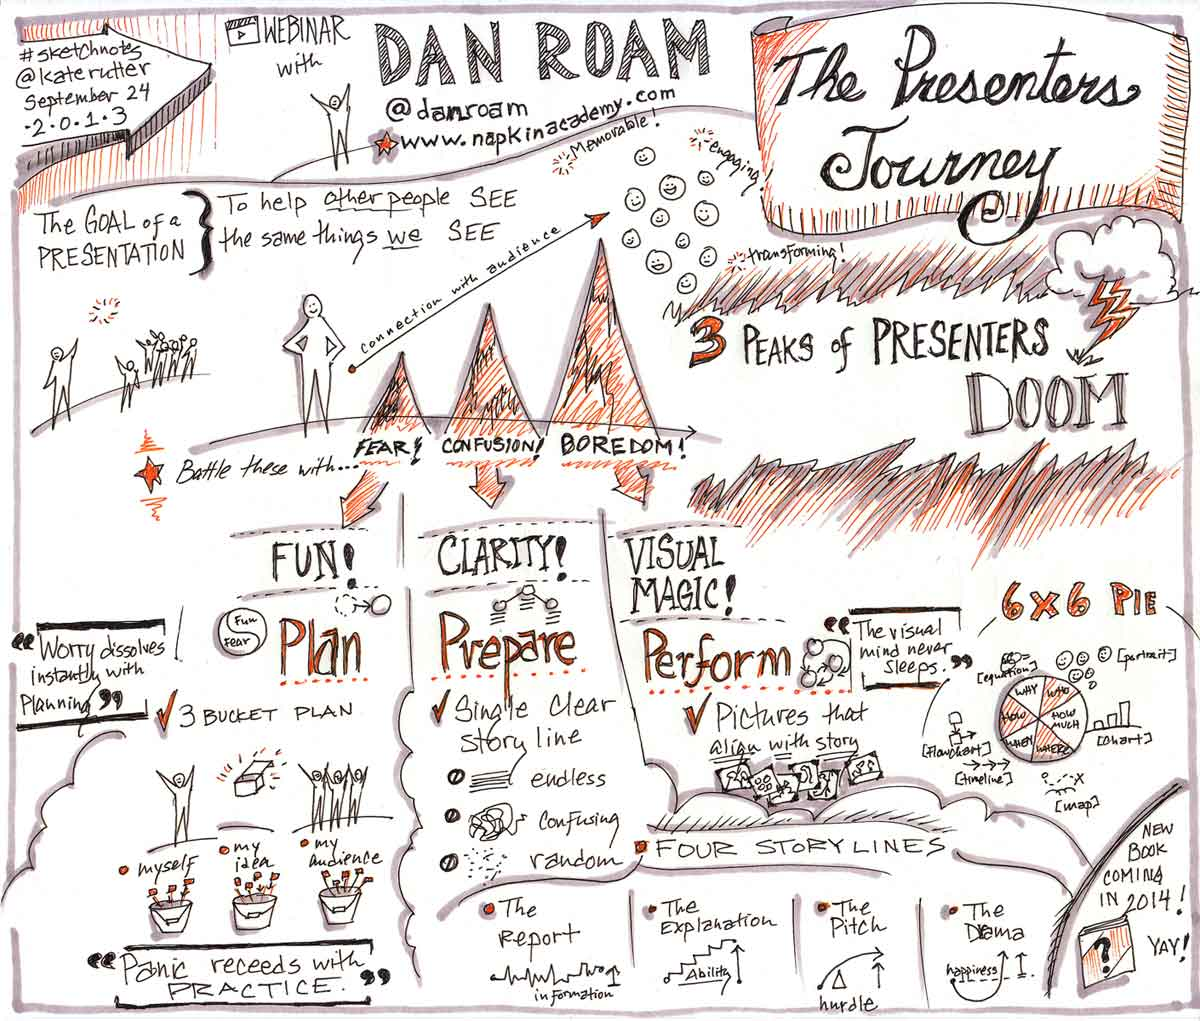 Sketchnotes for the Napkin Academy Live session on Presenters' Journey with Dan Roam [Sep. 24, 2013]